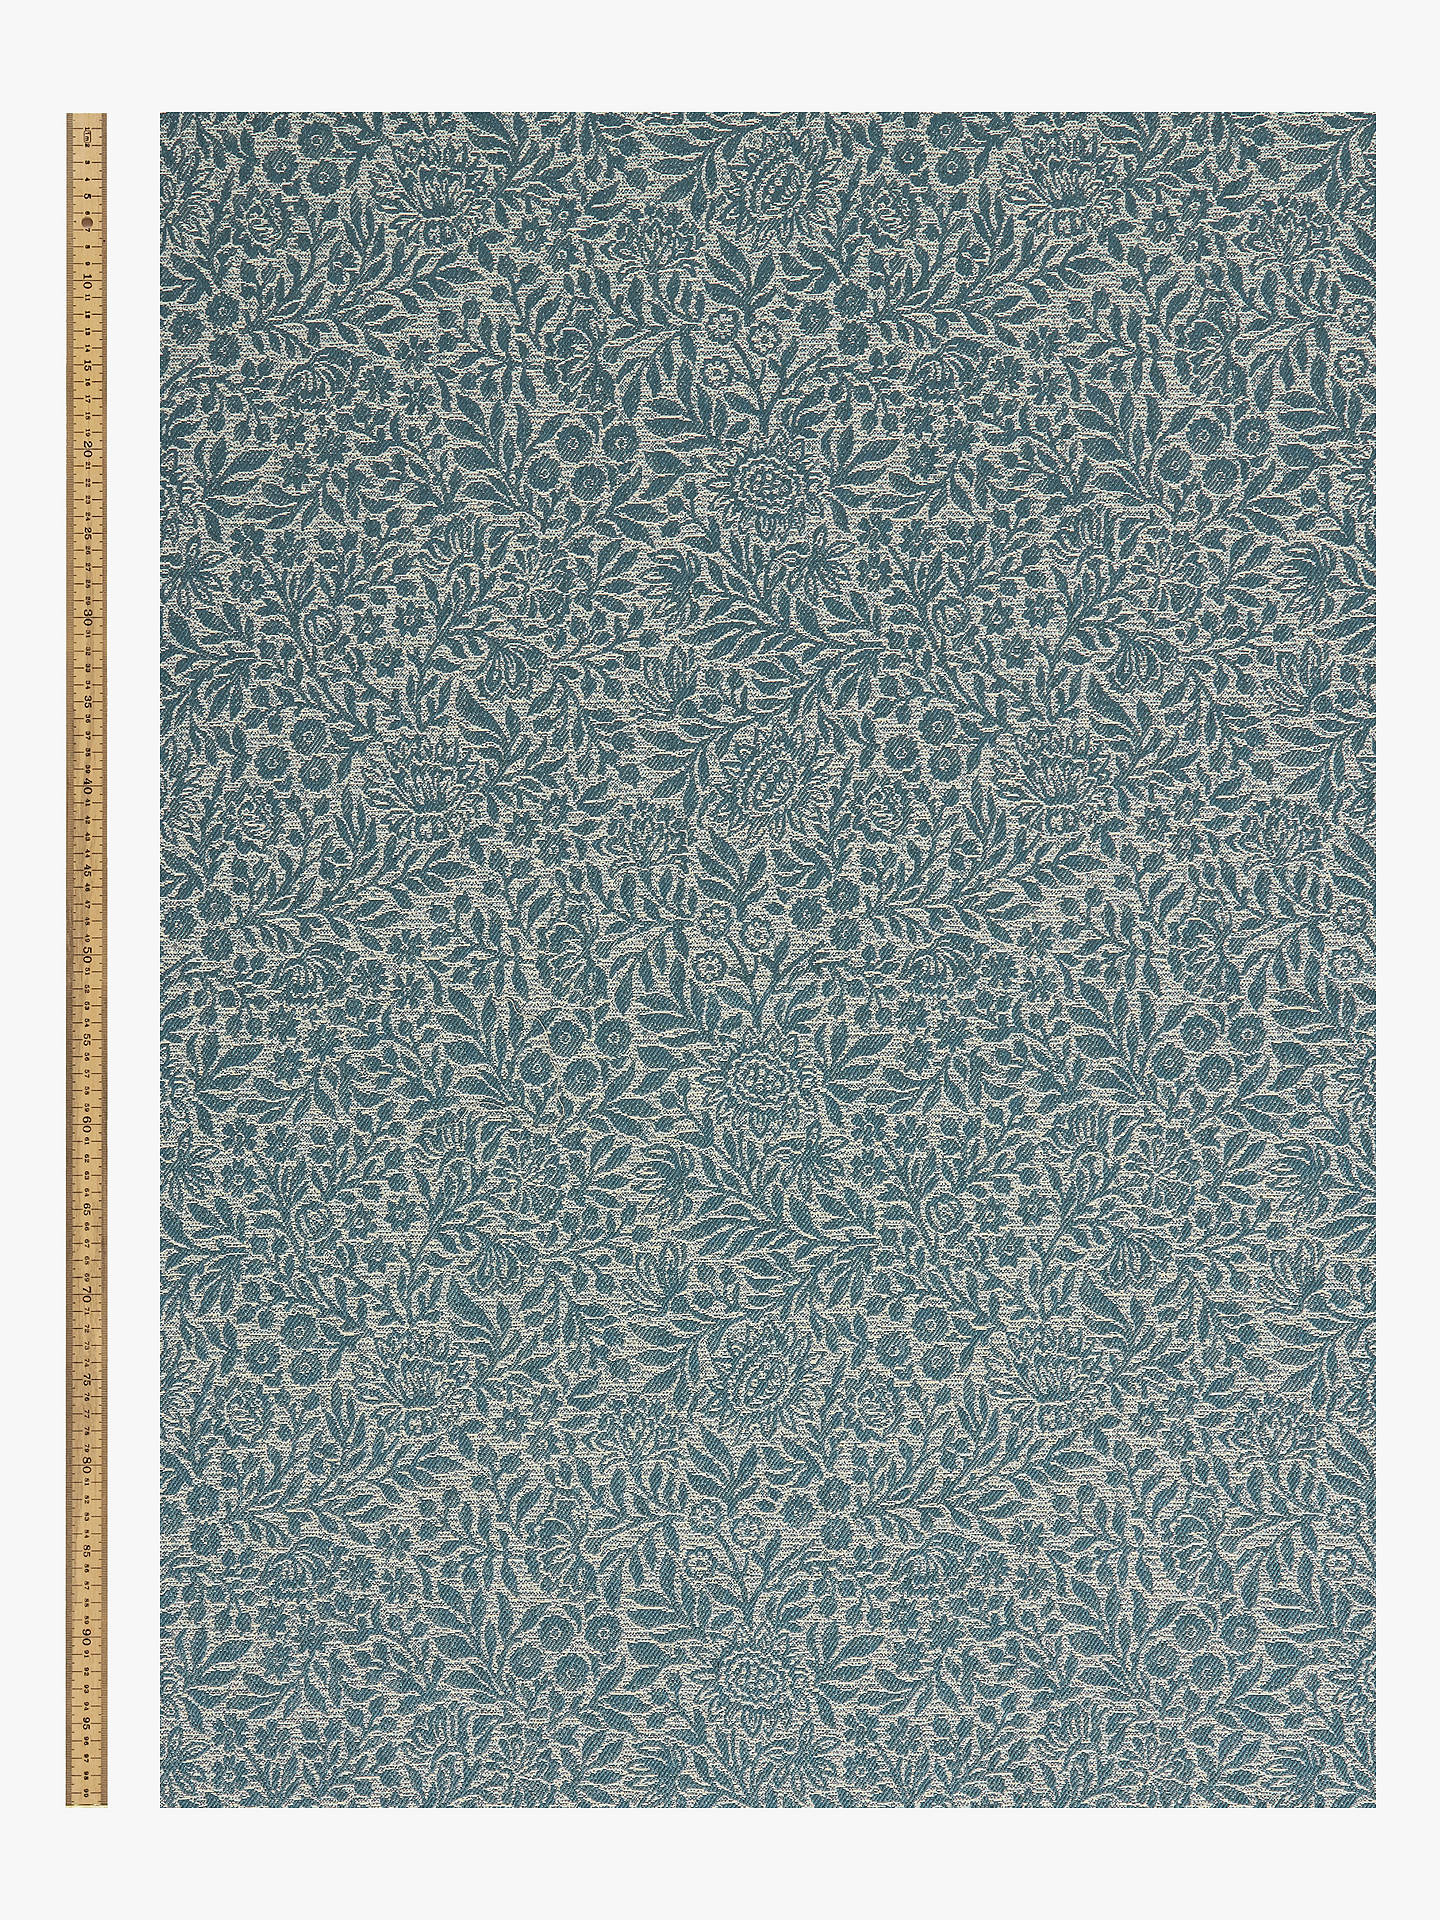 Buy John Lewis & Partners Hidcote Weave Furnishing Fabric, Heritage Blue Online at johnlewis.com